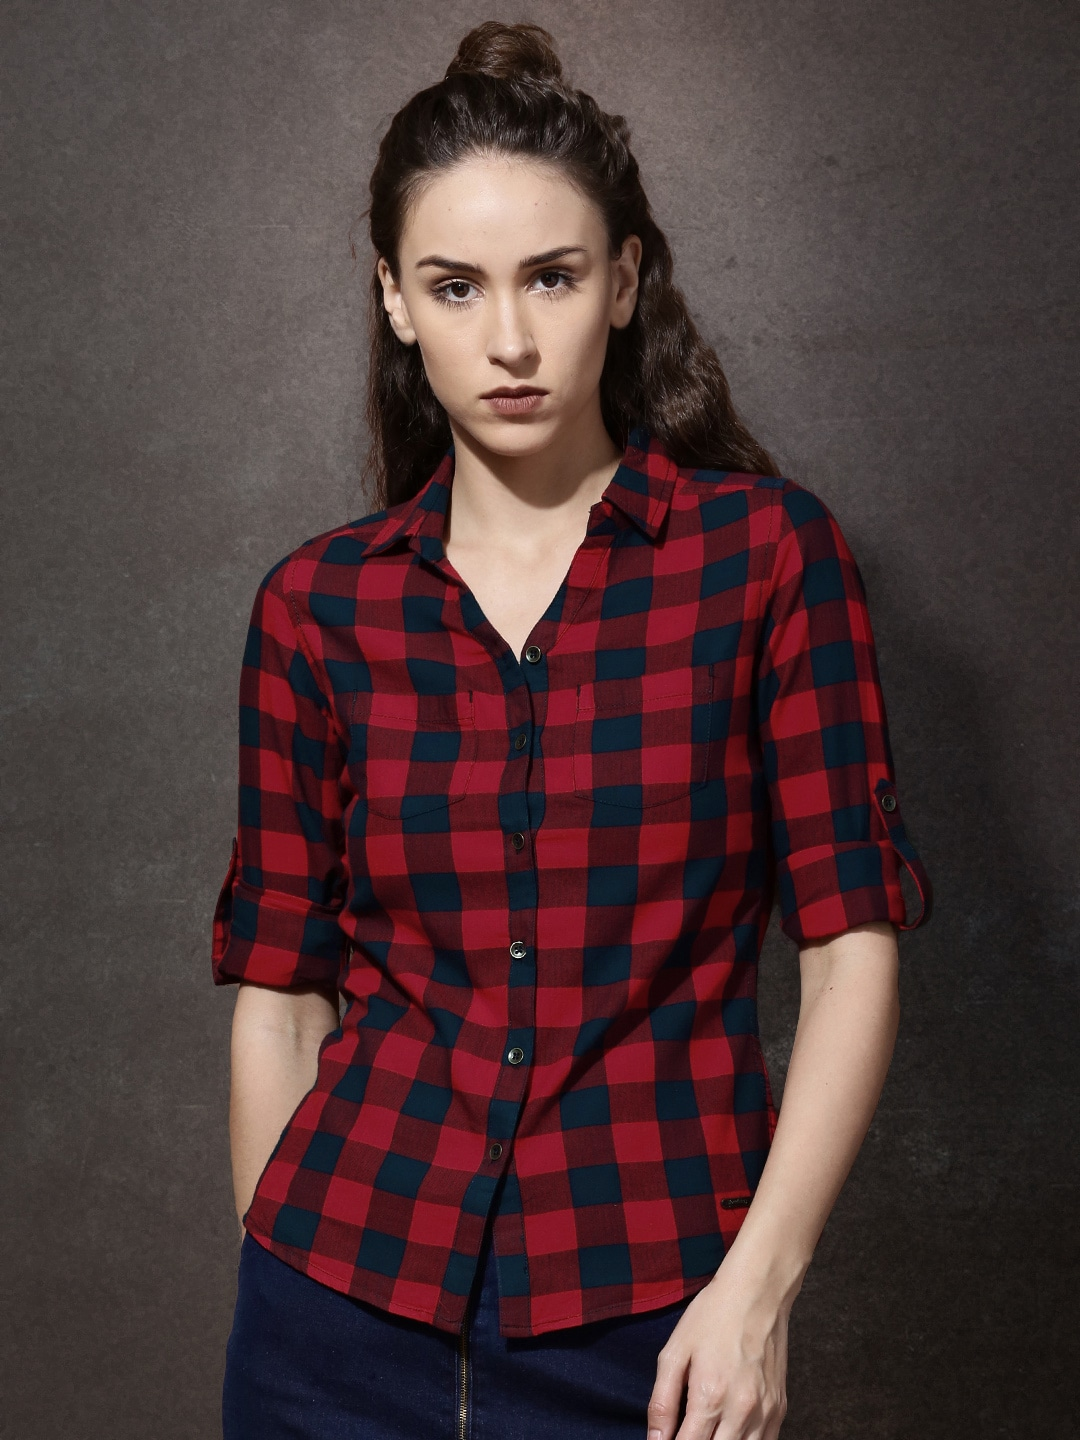 a3f75b9bd96 Women Red Check Shirts - Buy Women Red Check Shirts online in India